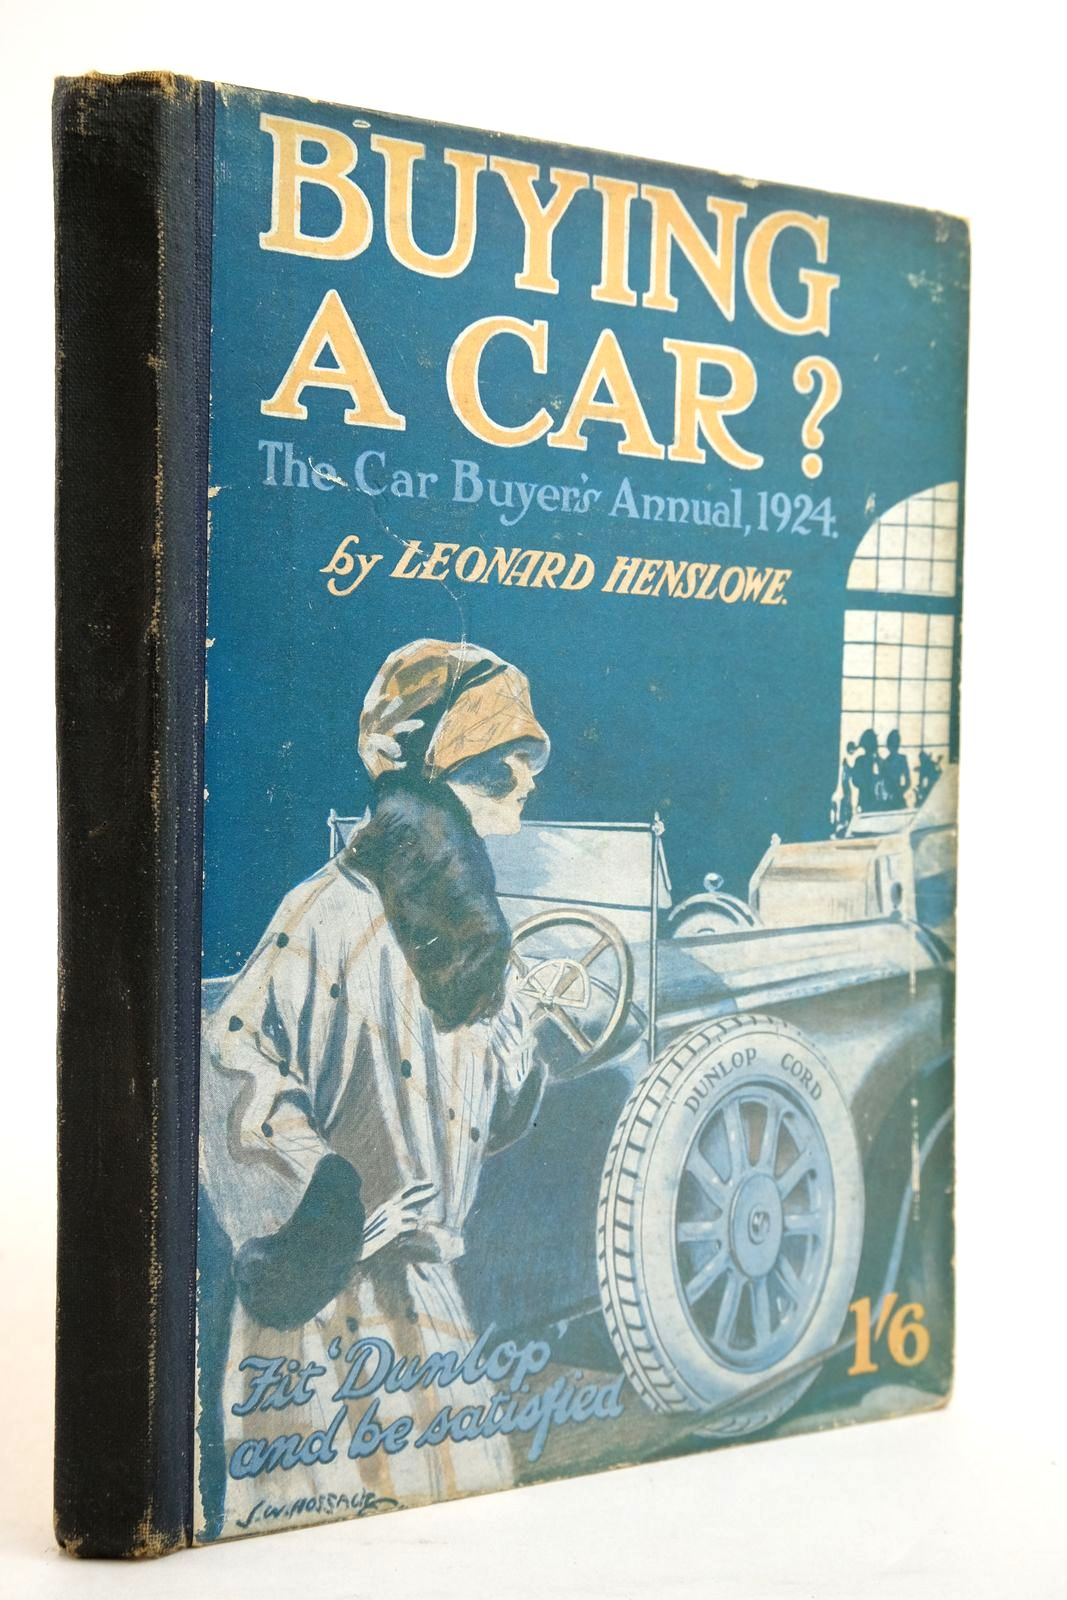 Photo of BUYING A CAR? THE CAR BUYER'S ANNUAL, 1924- Stock Number: 2134571